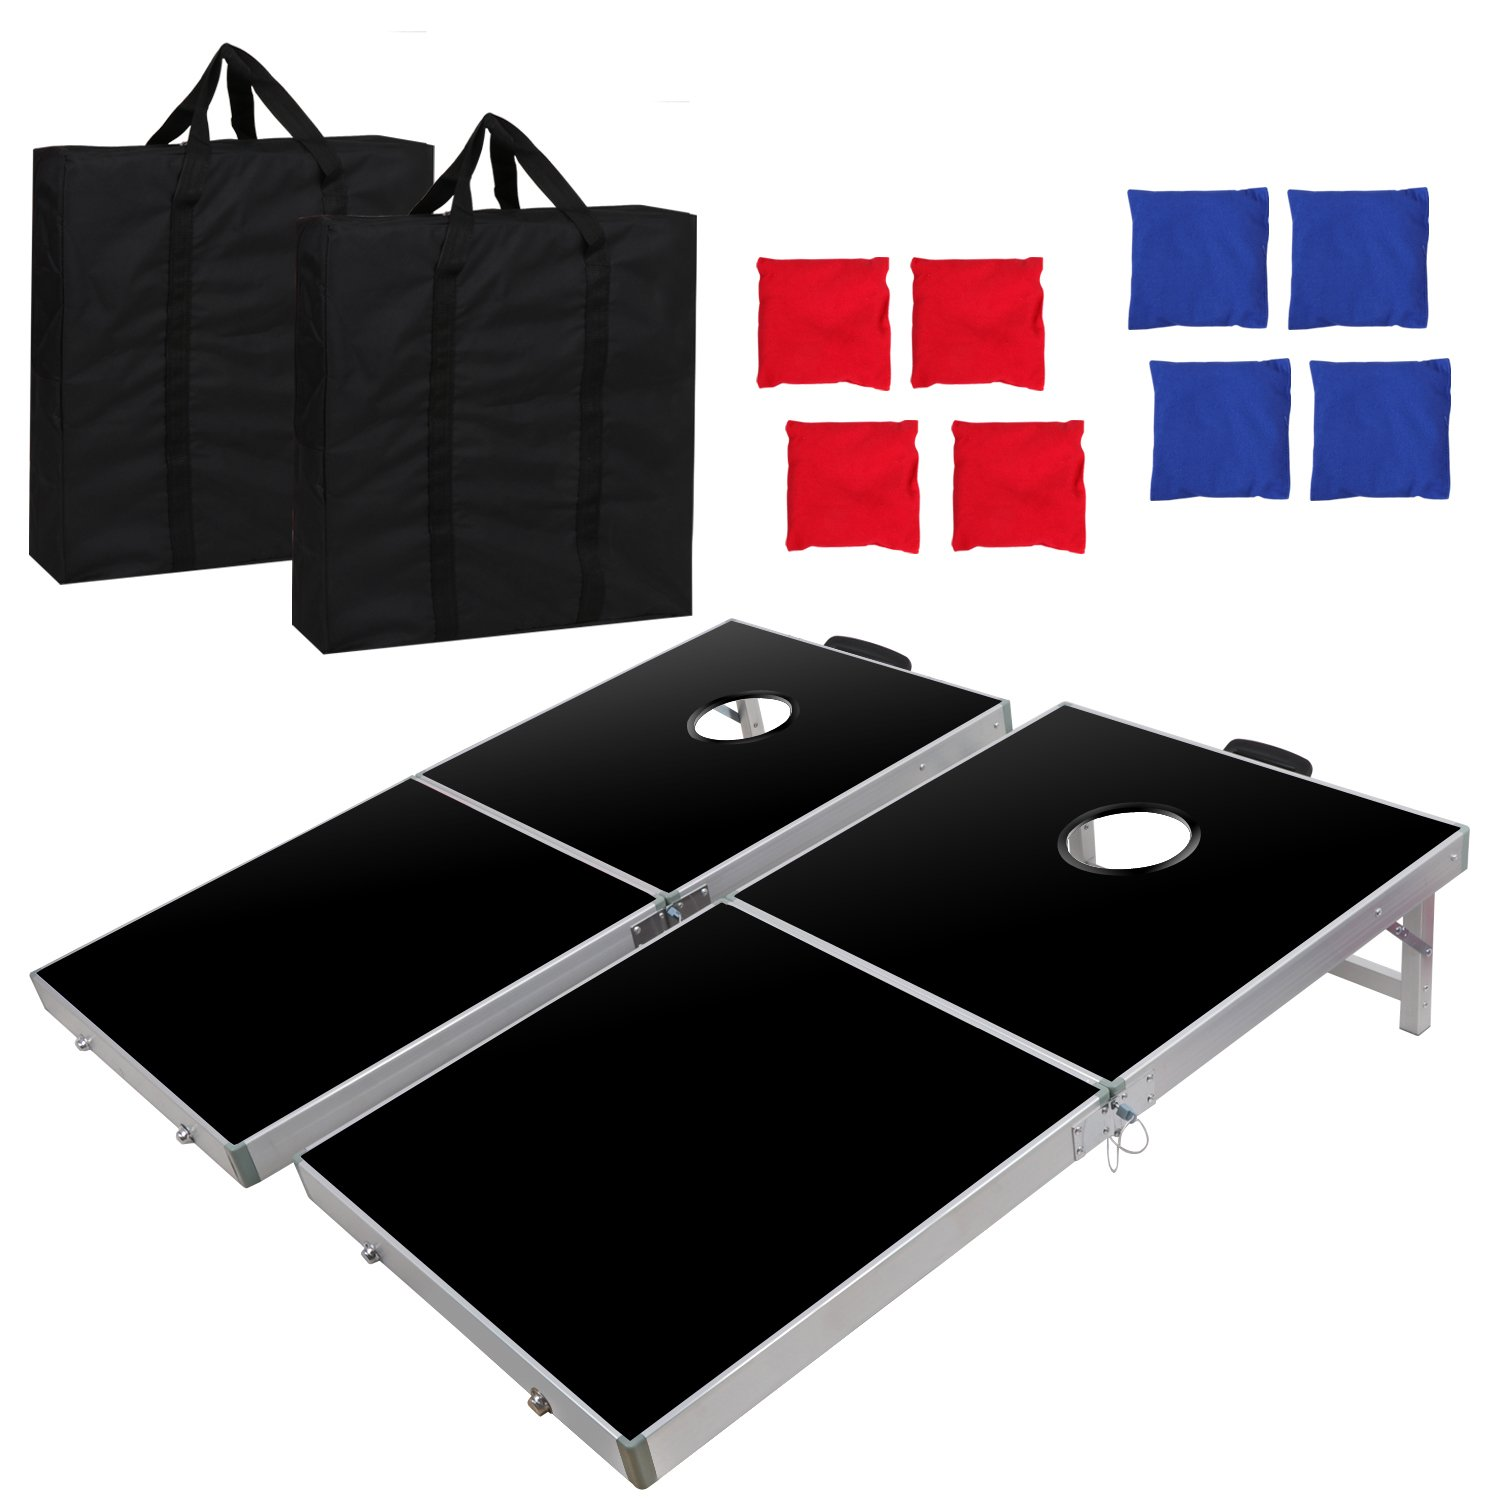 BBBuy Foldable Cornhole Toss Bean Bag Game Set MDF Board with Aluminum Frame (4FT x 2FT) by BBBuy (Image #1)